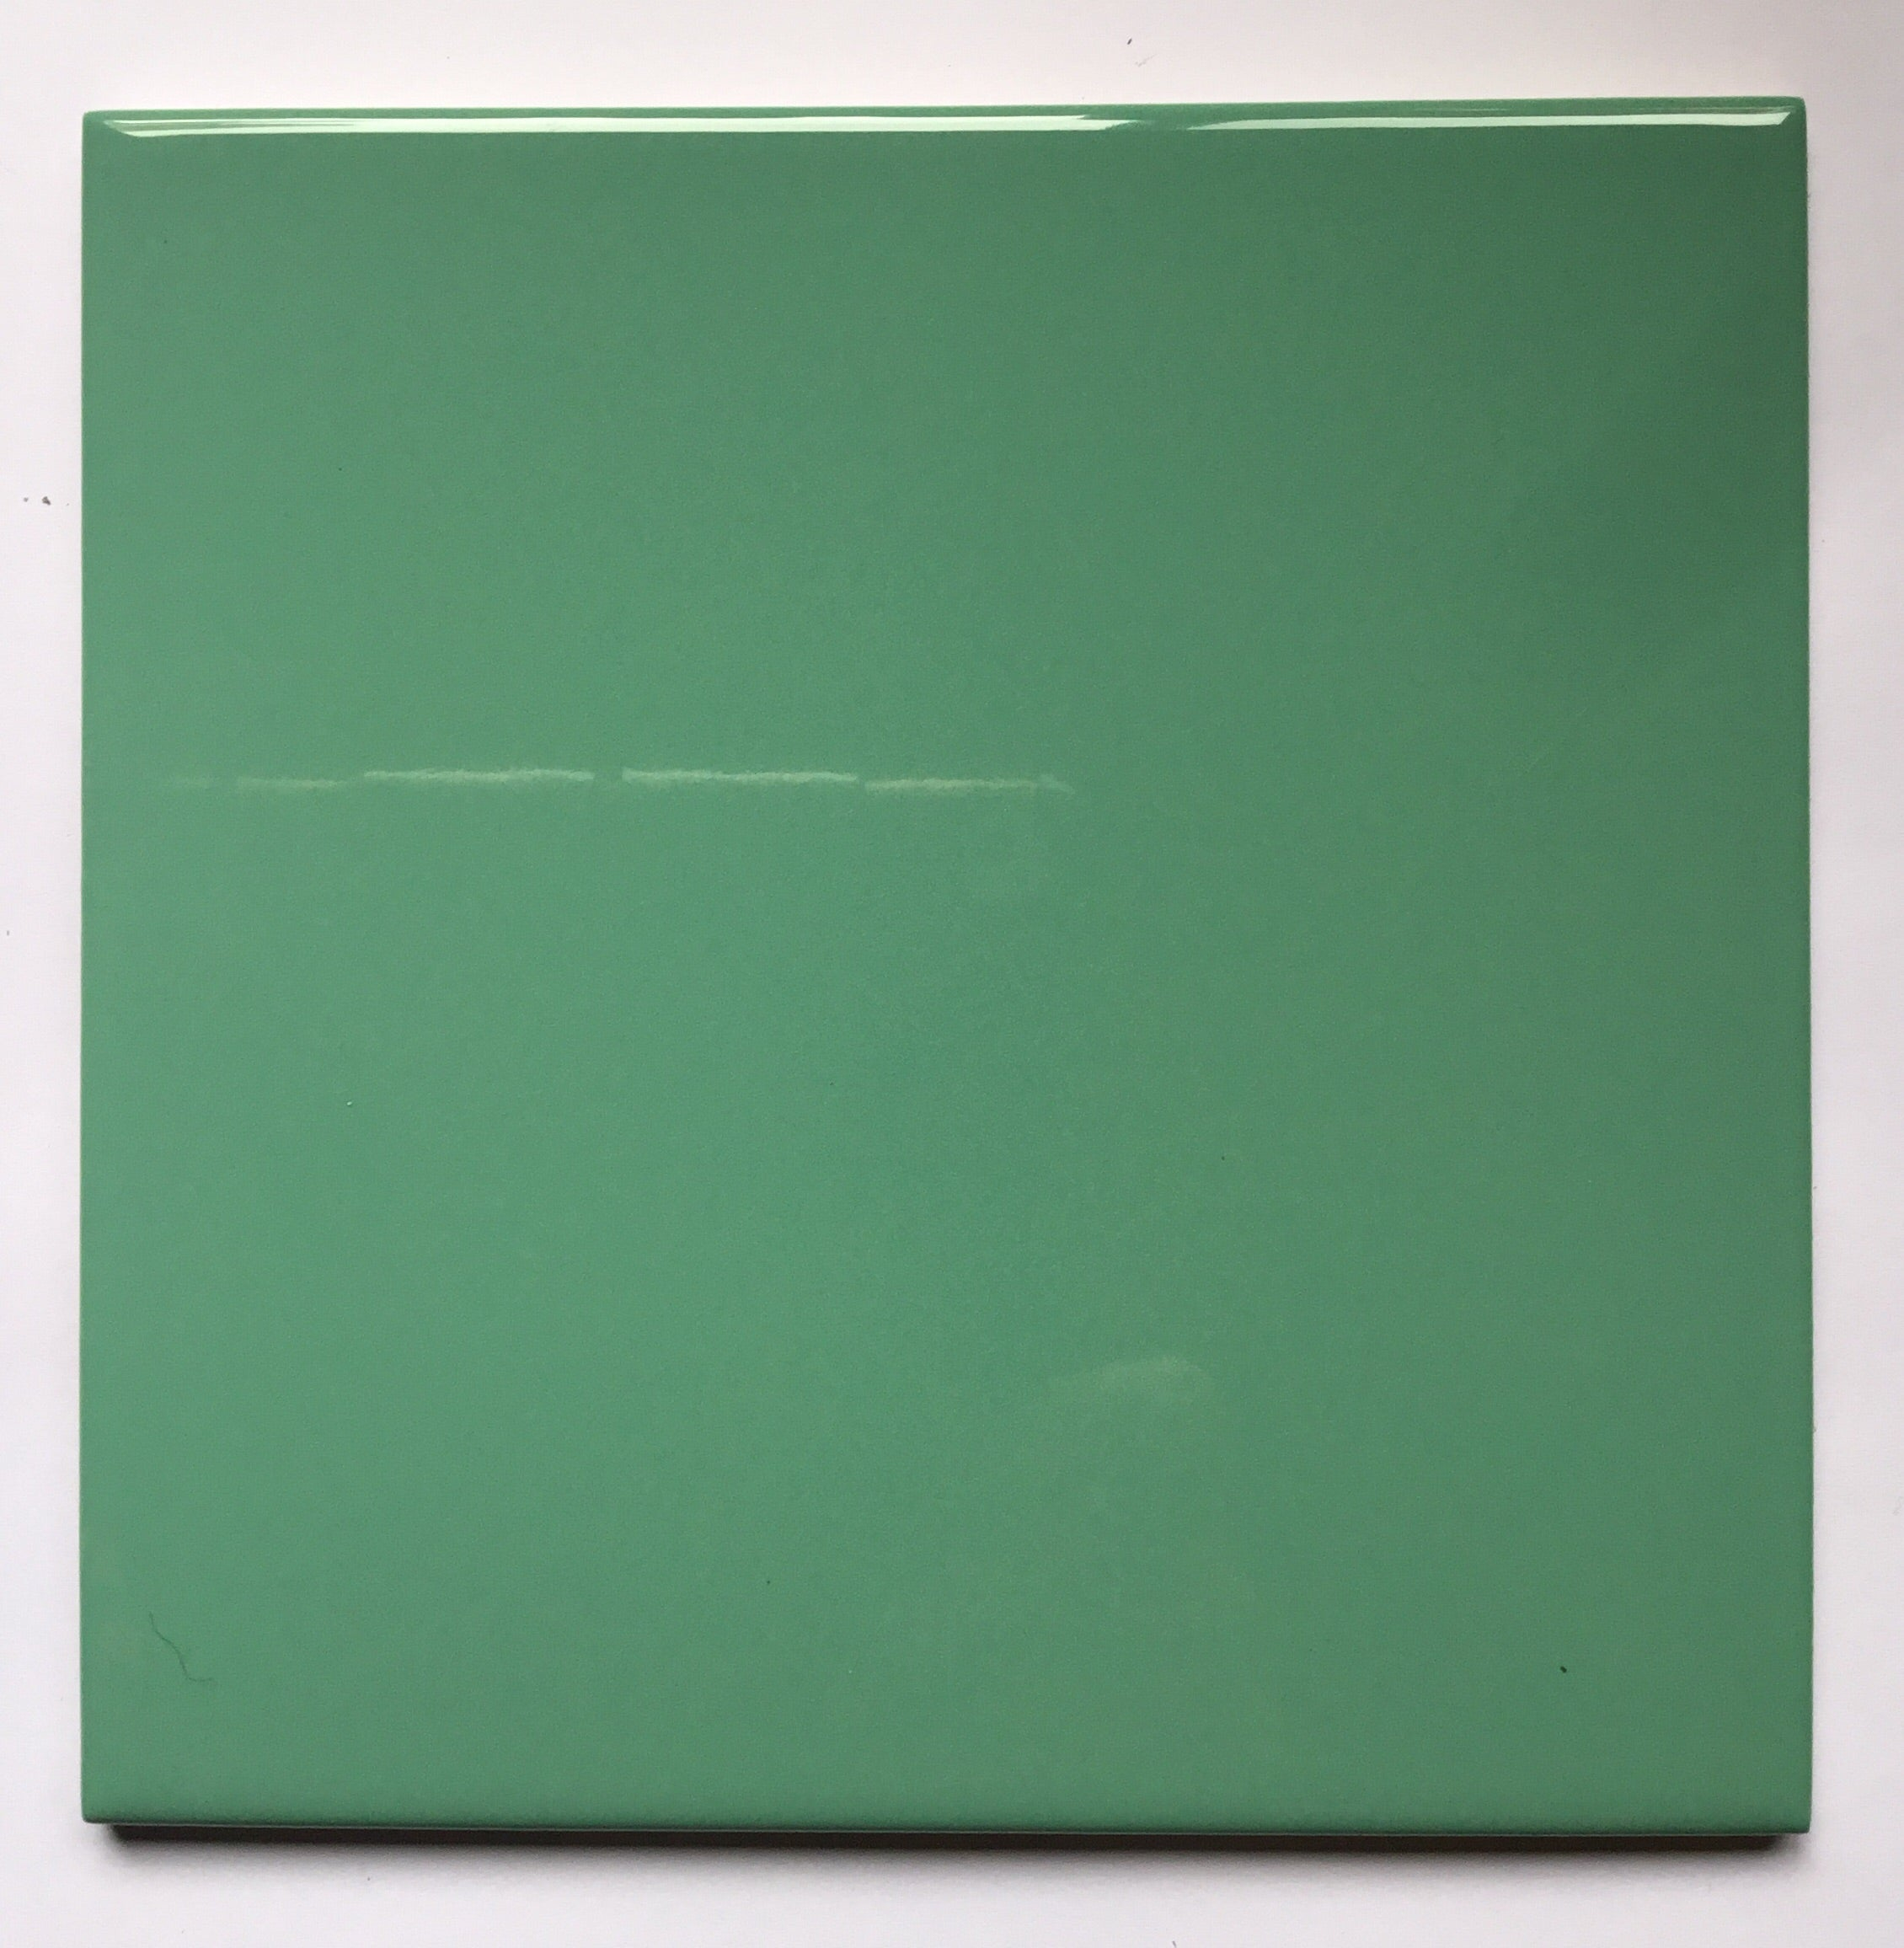 1D2 CEREV Gloss 150mm x 150mm STUNNING Jade Tile Portugal - Aussie Supply Company